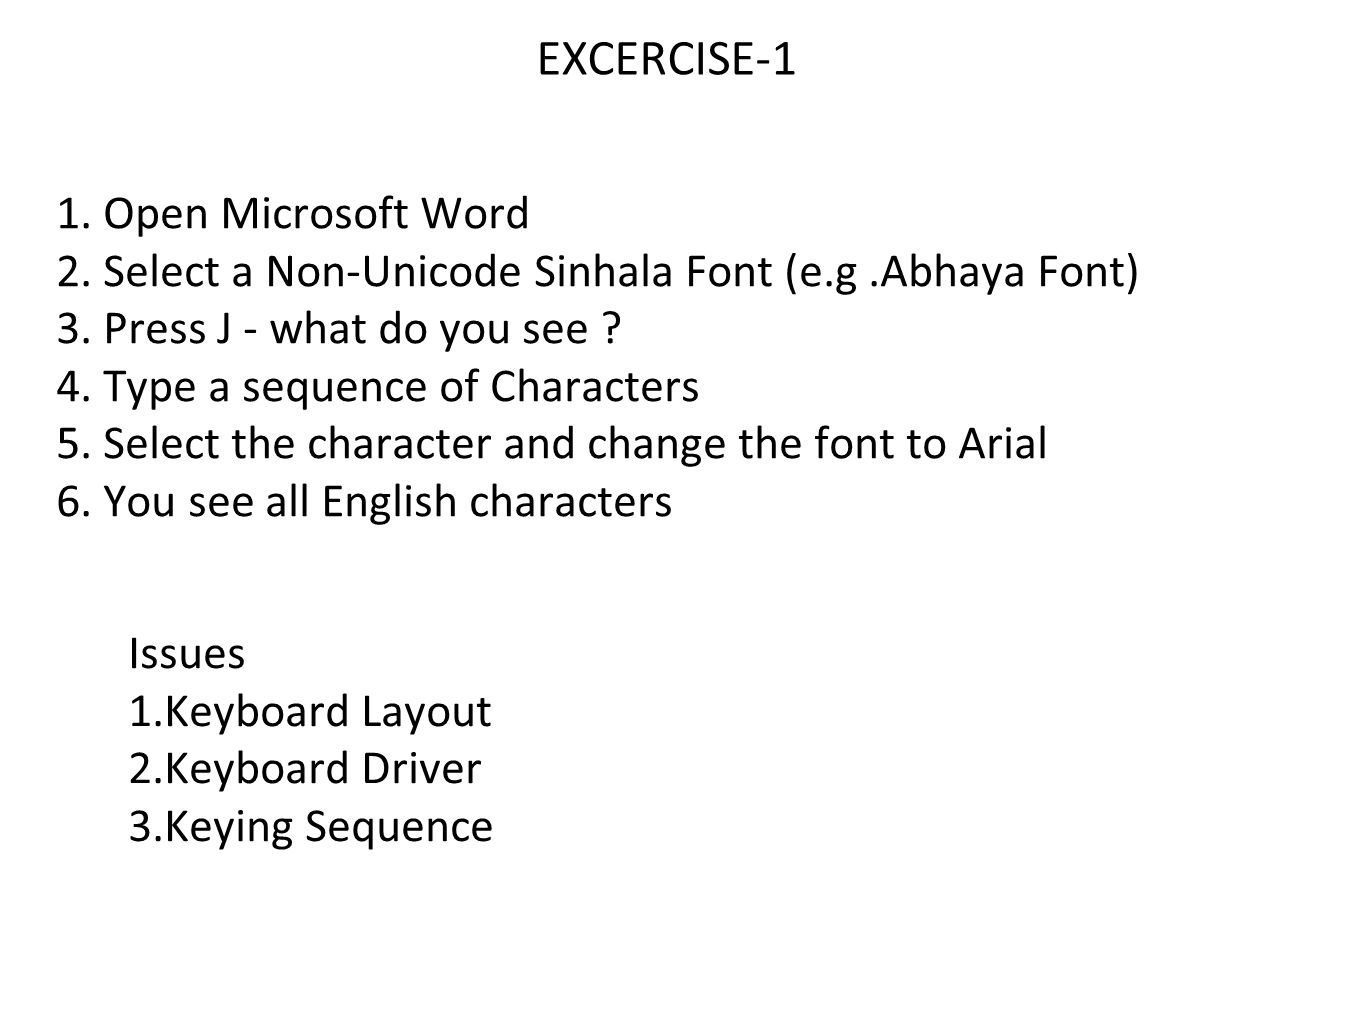 download sinhala fonts for microsoft word 2007